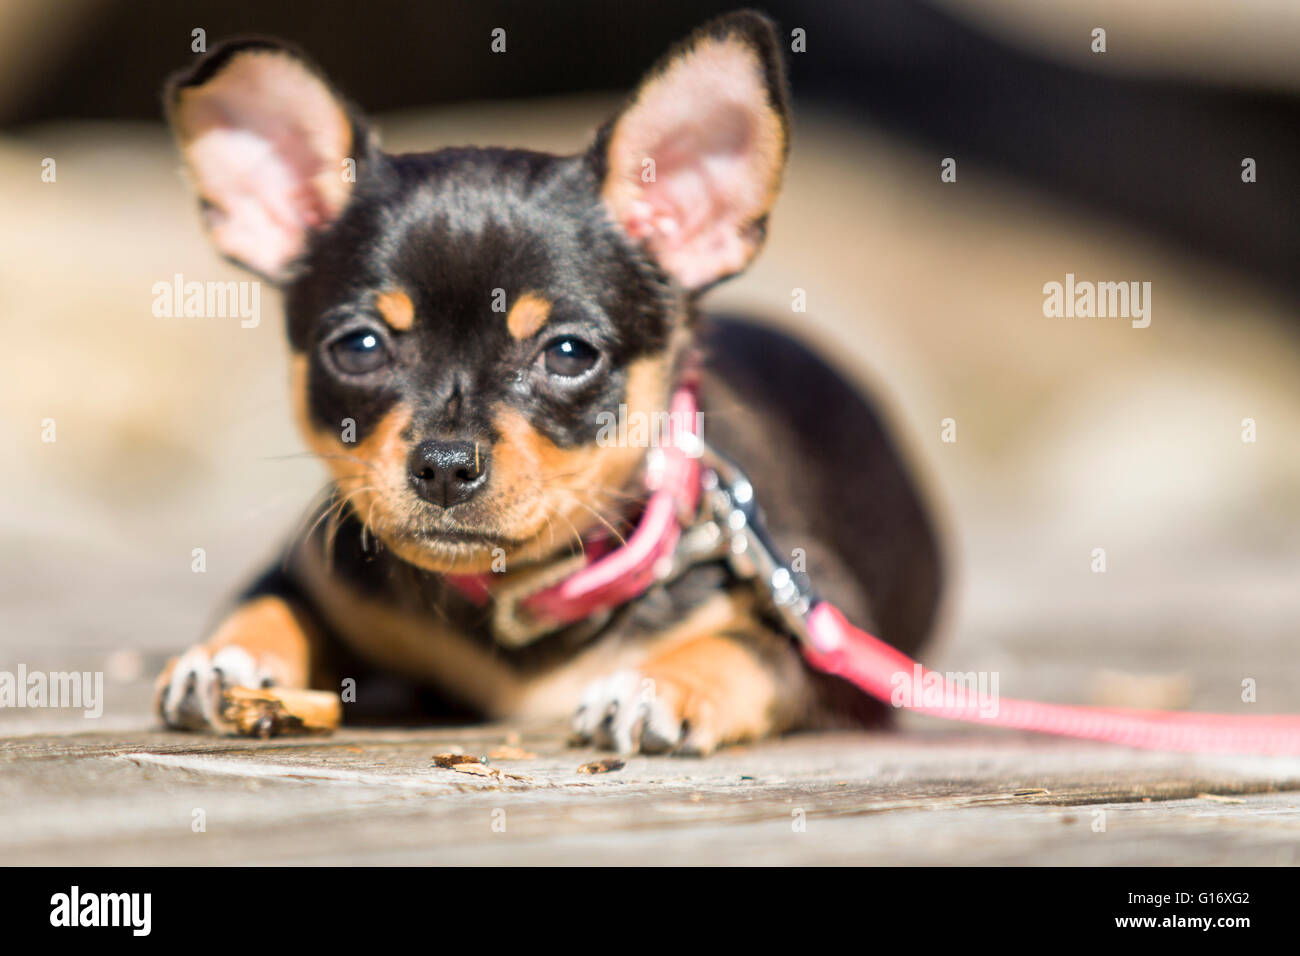 Female black and tan Chihuahua puppy dog outdoors enjoying warm weather  Model Release: No.  Property Release: Yes - Stock Image